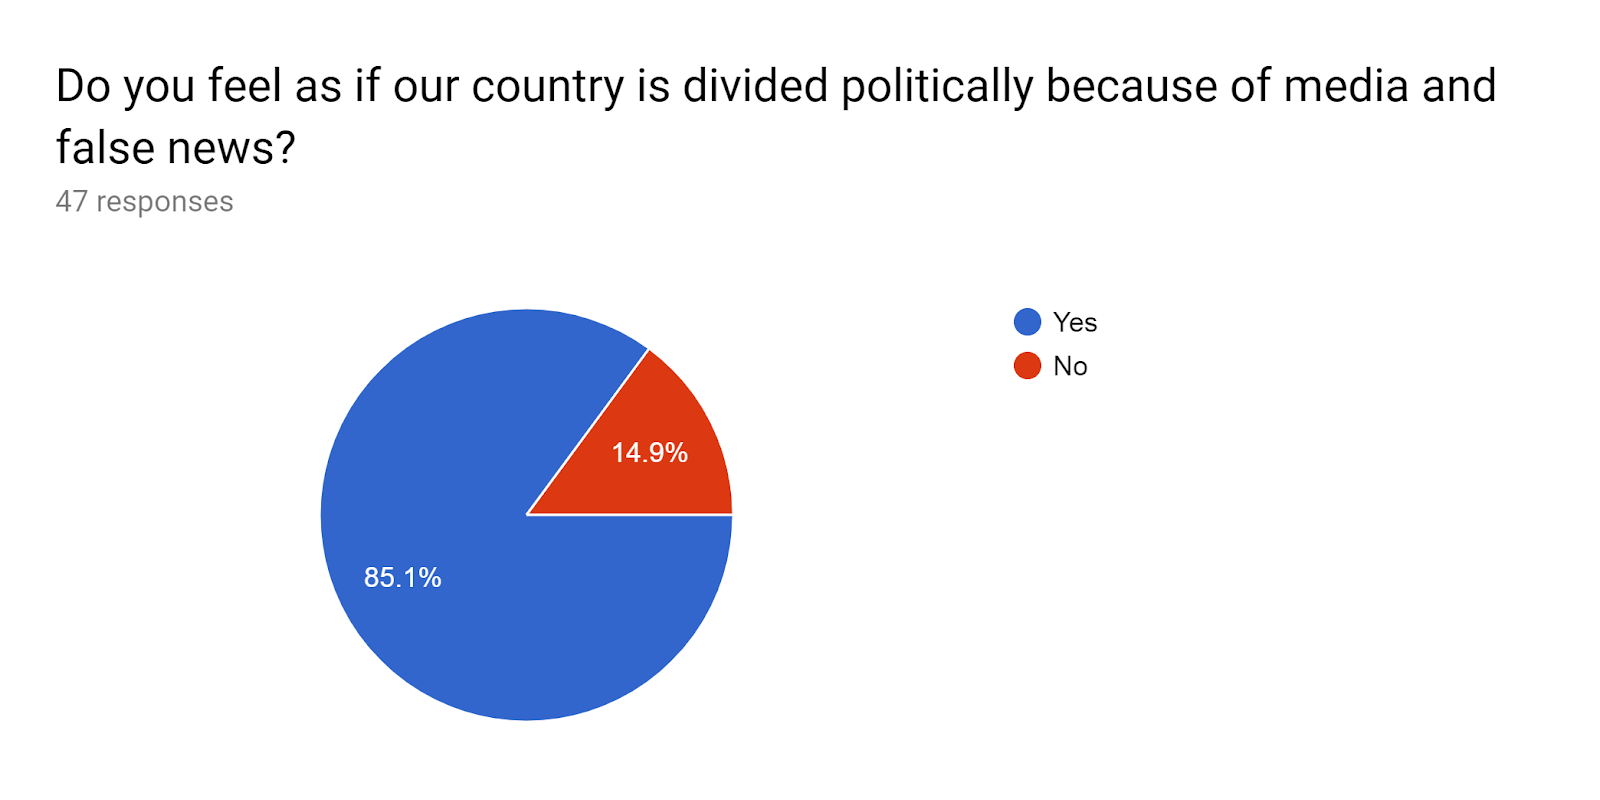 Forms response chart. Question title: Do you feel as if our country is divided politically because of media and false news? . Number of responses: 47 responses.